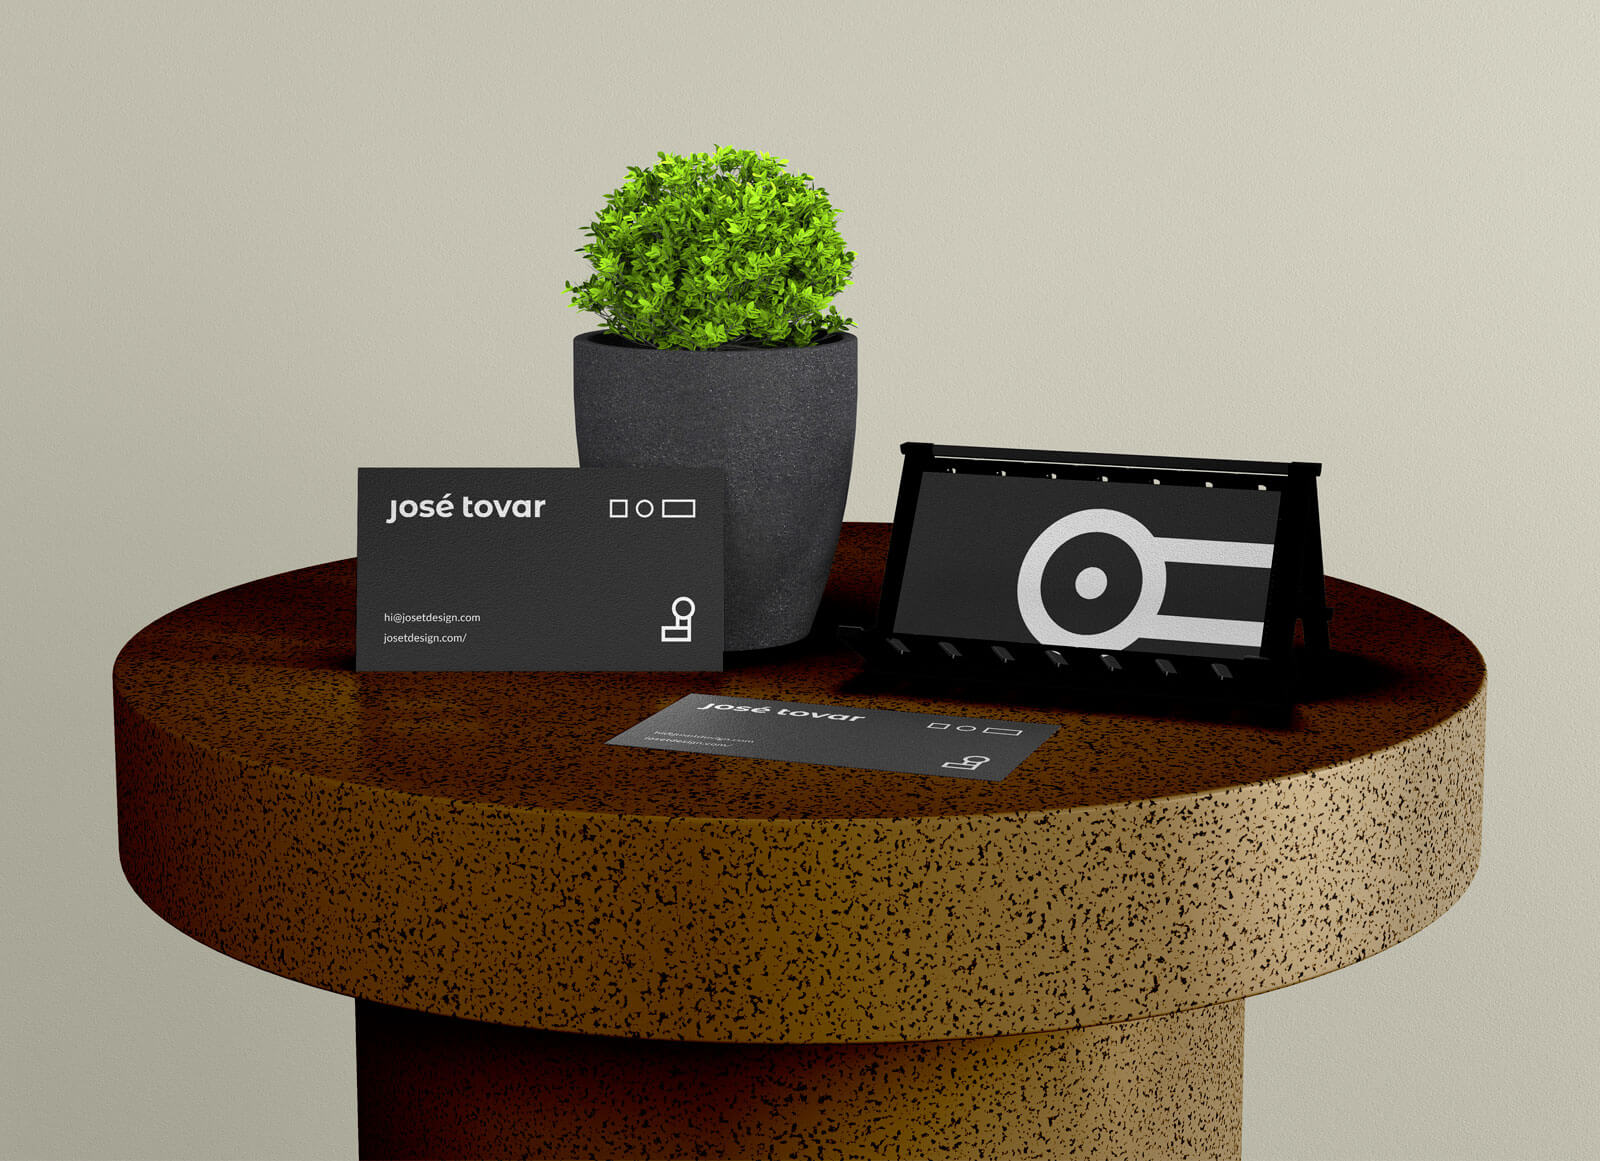 Free Business Card Stand On Table Mockup PSD